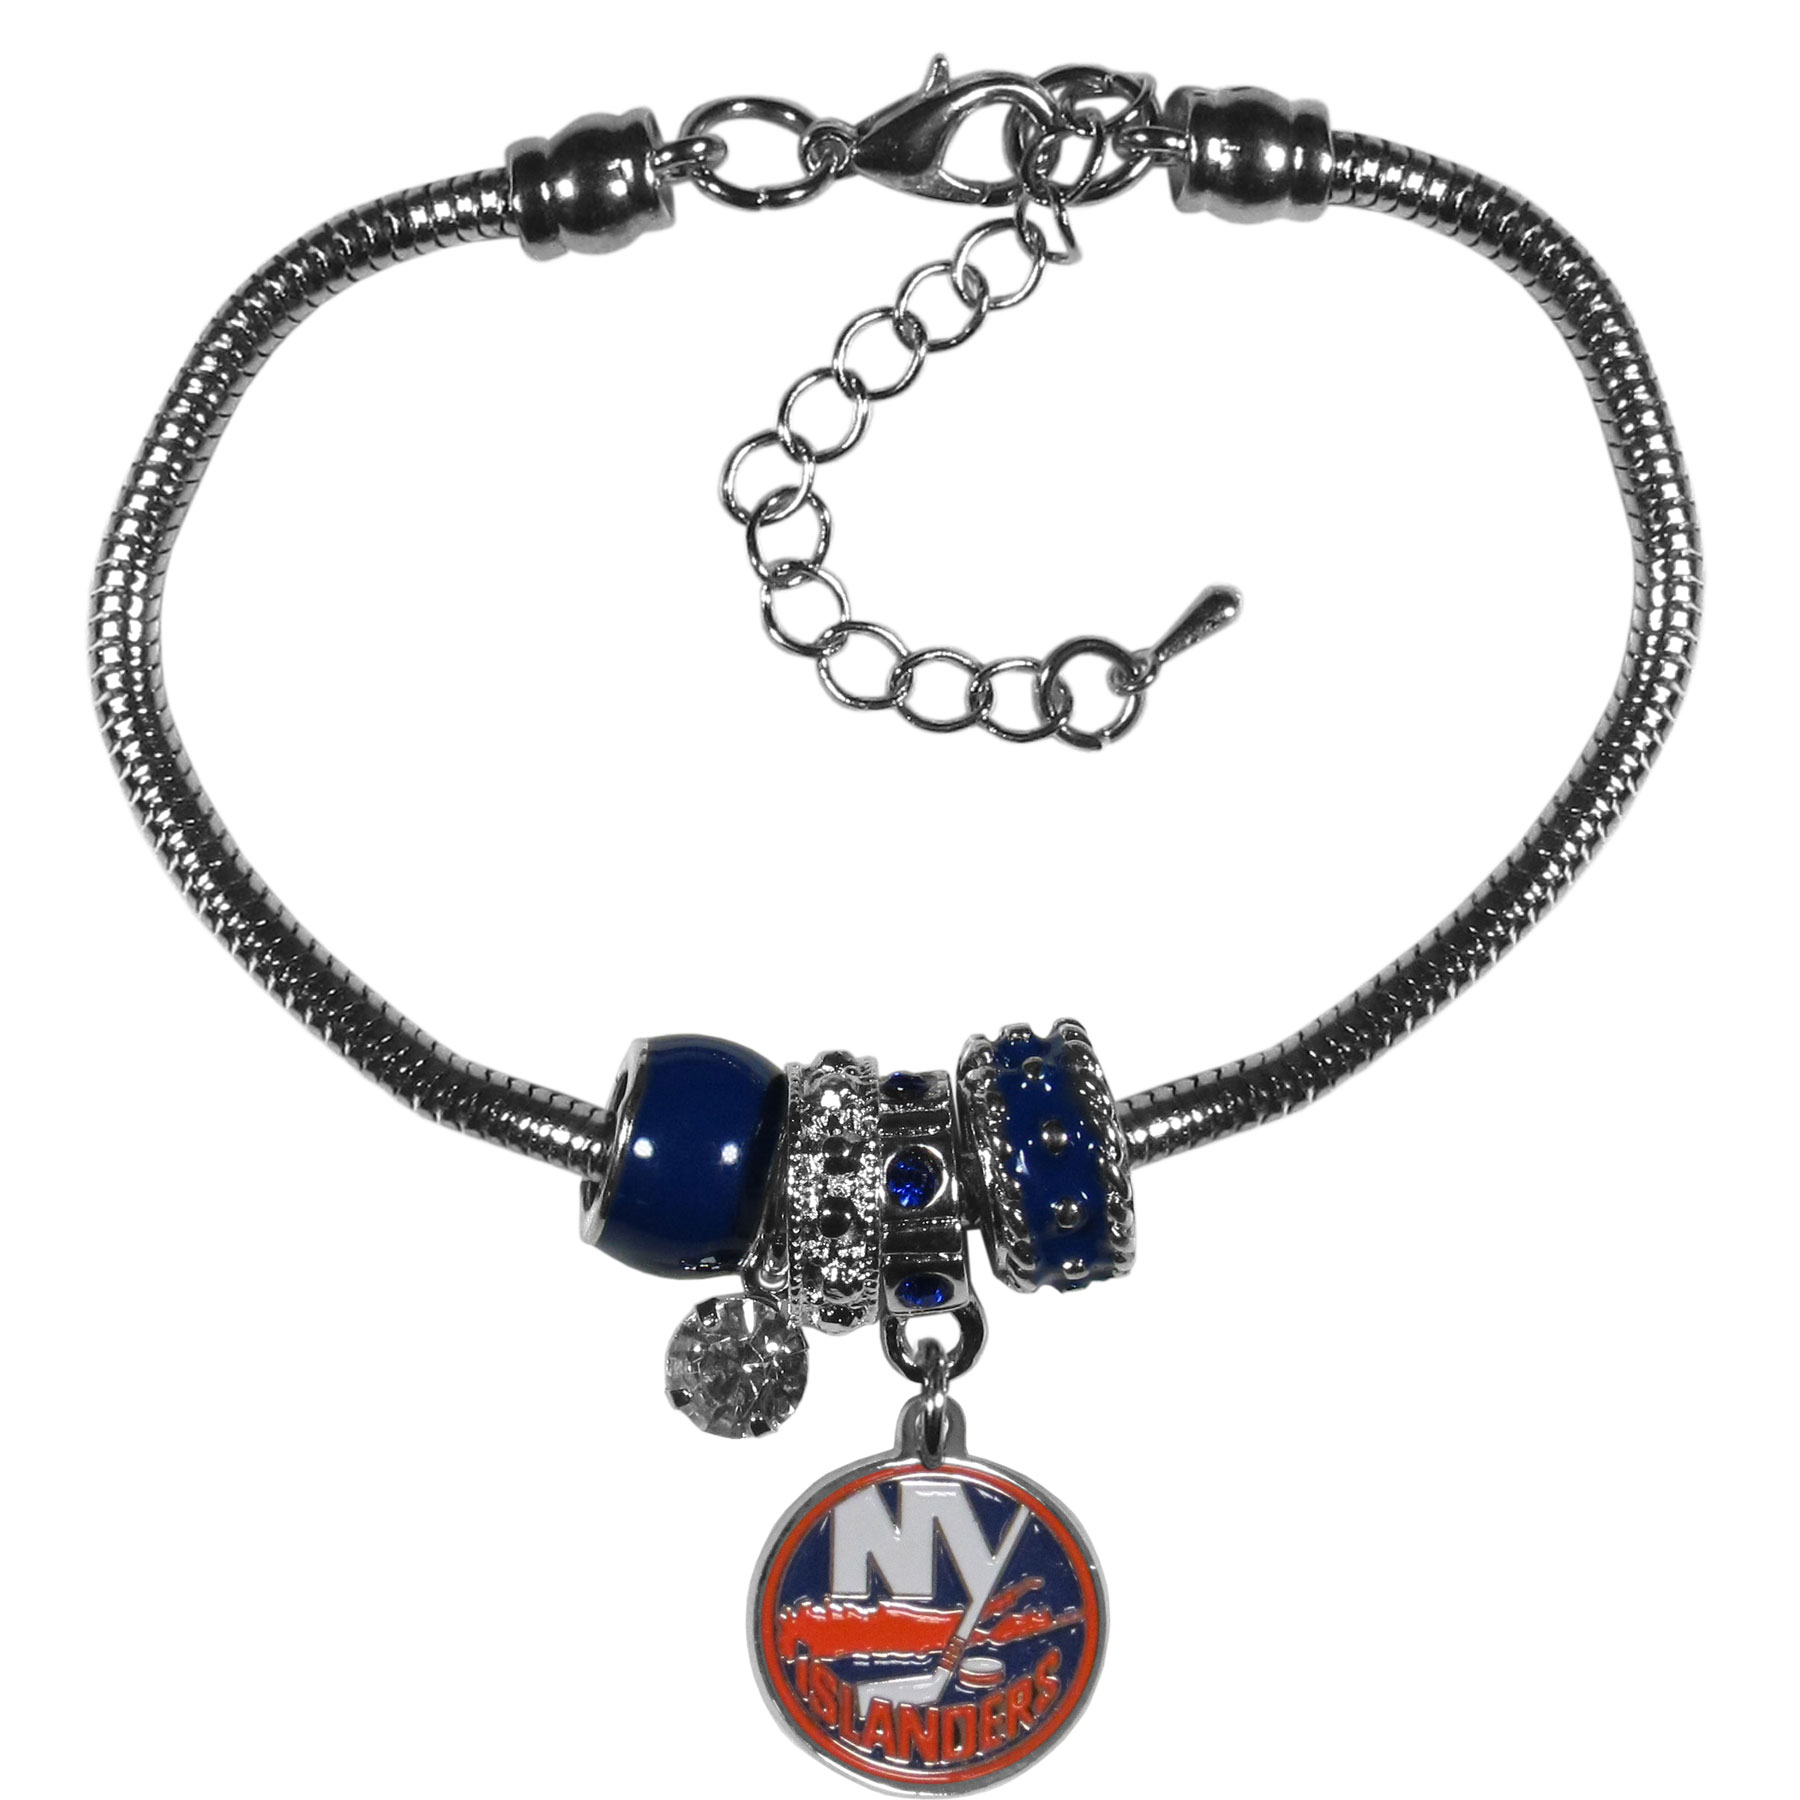 New York Islanders® Euro Bead Bracelet - We have combined the wildly popular Euro style beads with your favorite team to create our  New York Islanders® bead bracelet. The 7.5 inch snake chain with 2 inch extender features 4 Euro beads with enameled team colors and rhinestone accents with a high polish, nickel free charm and rhinestone charm. Perfect way to show off your team pride.